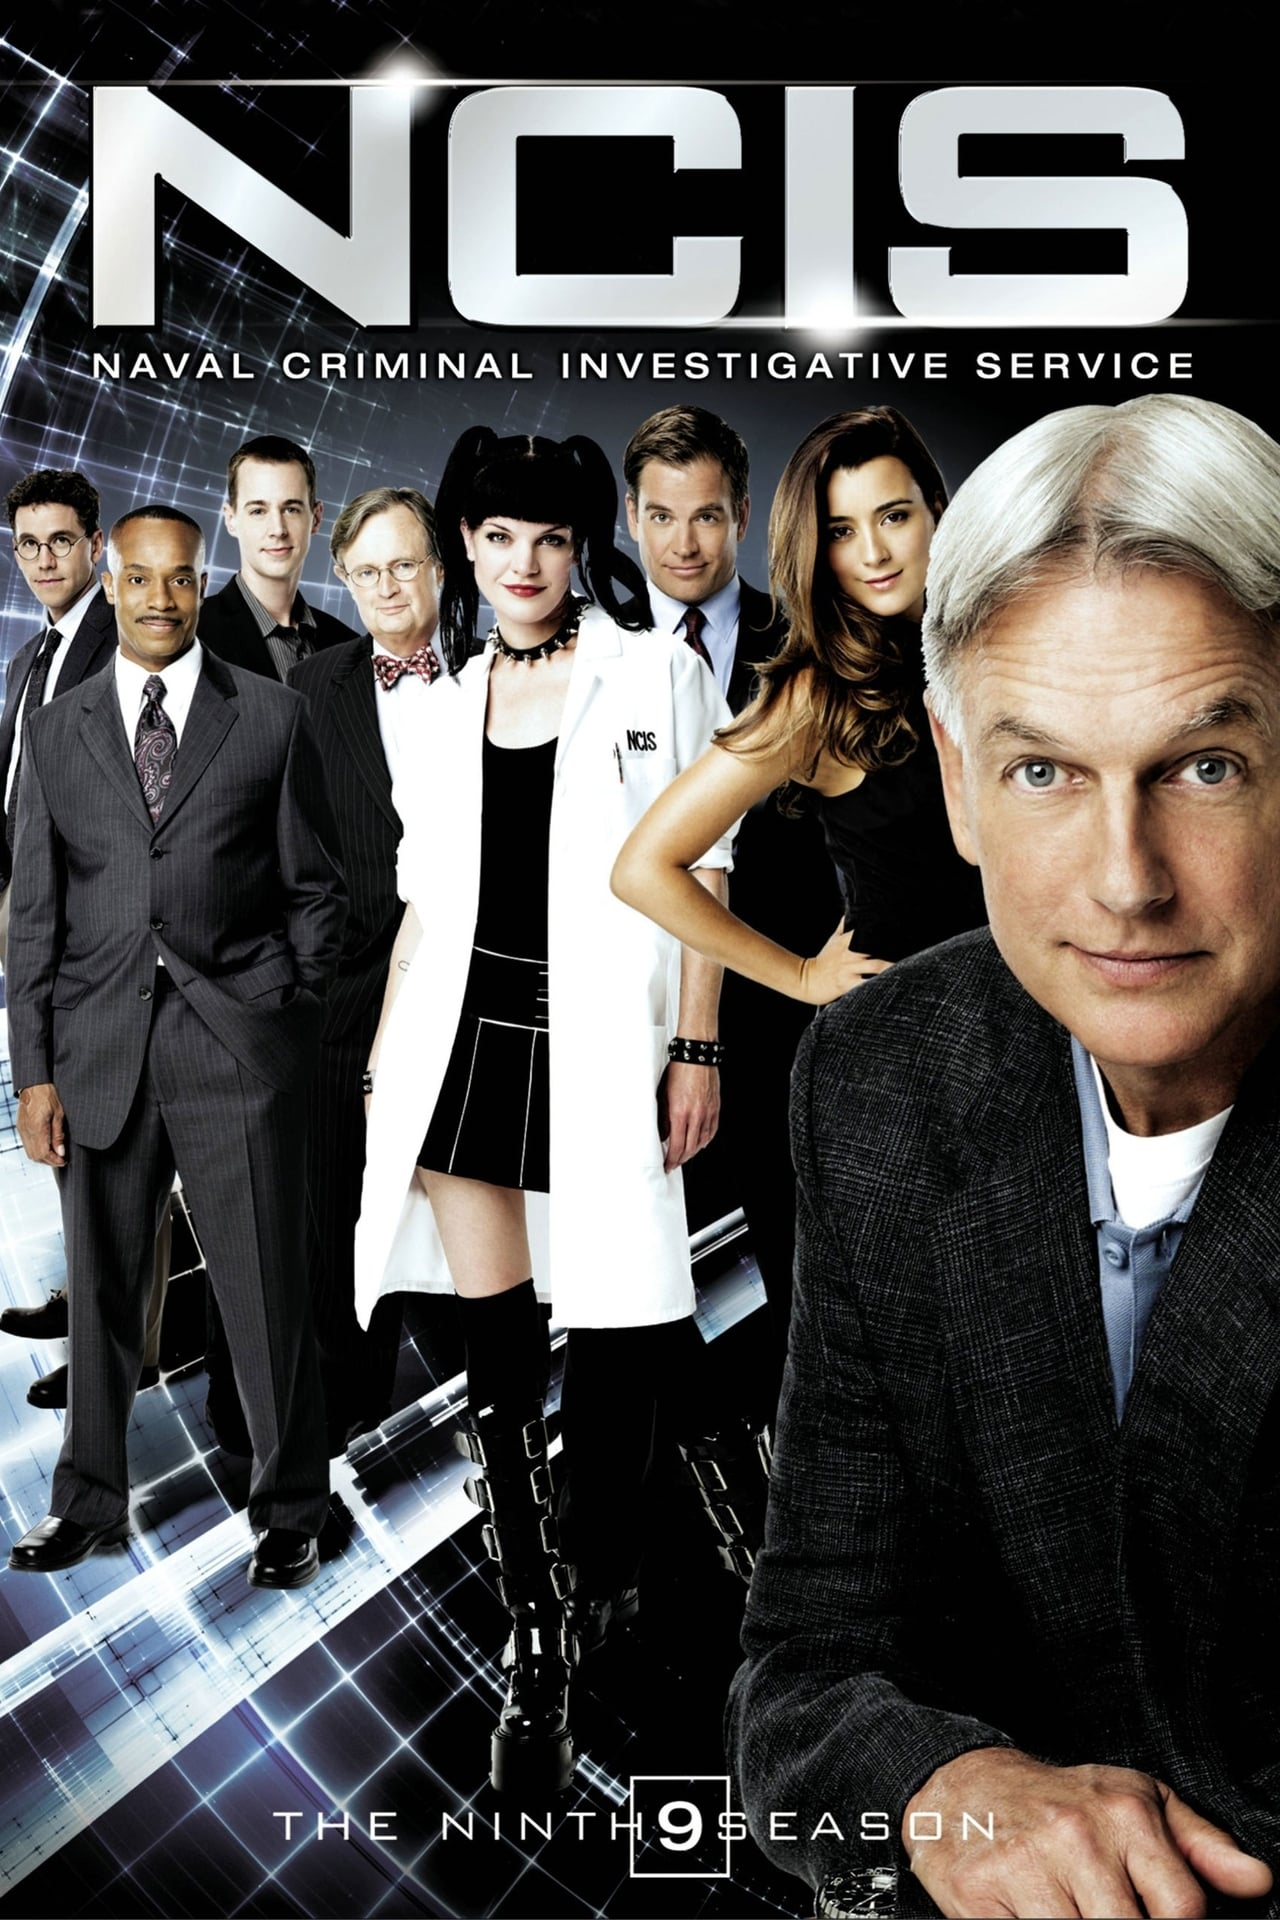 Putlocker Ncis Season 9 (2012)